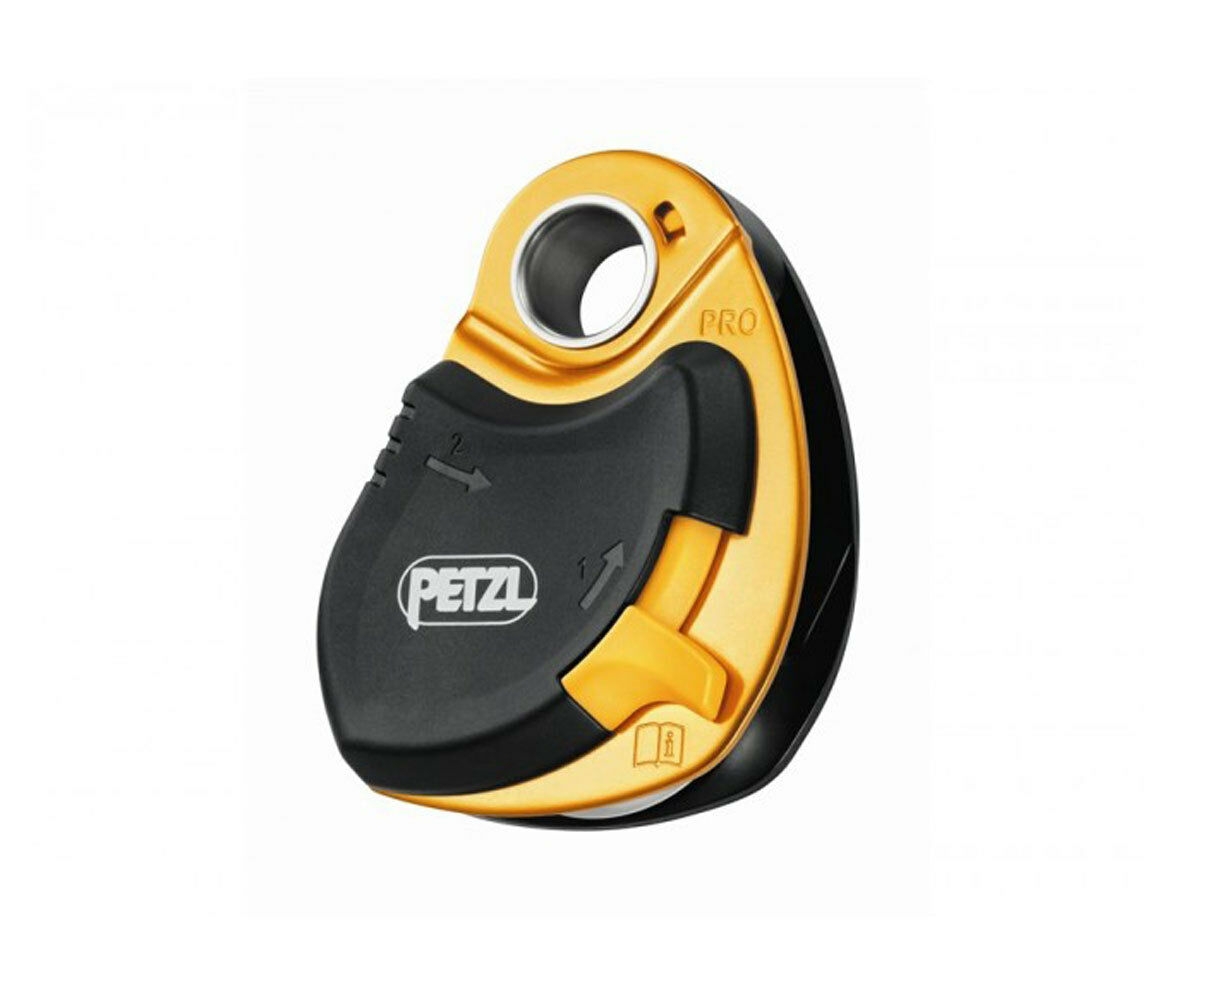 PRO PULLEY high-efficiency loss-resistant by PETZL